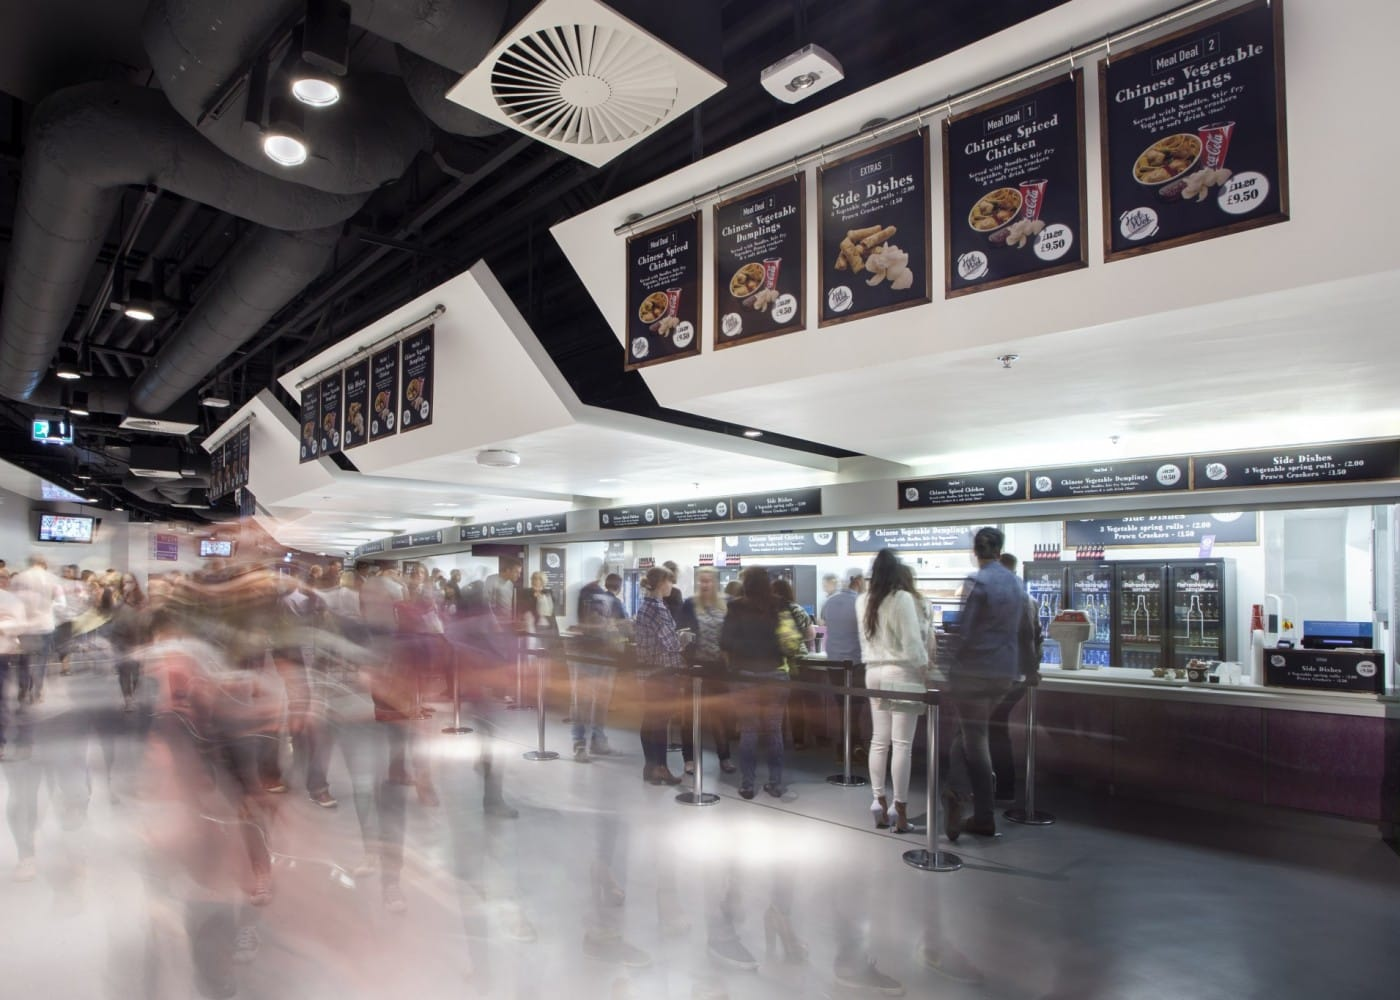 commercial lighting design: Barclaycard Arena food service area